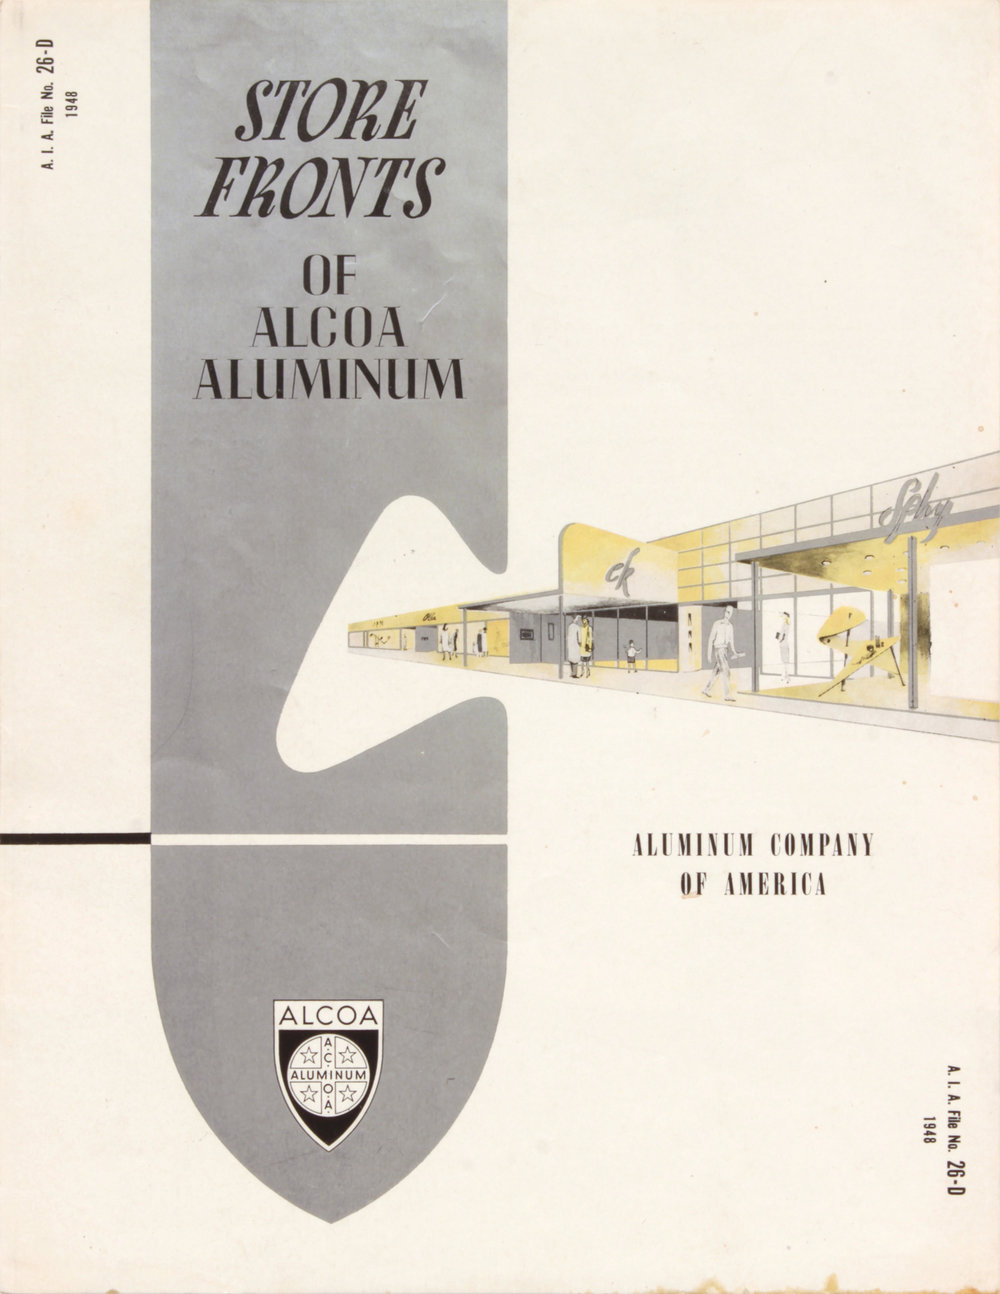 8. 1948, Alcoa Aluminum, Store Fronts, Designed by Robert Lepper, Executed partly by Philip Pearlstein, 11x8 1:2, PPS 1577.JPG